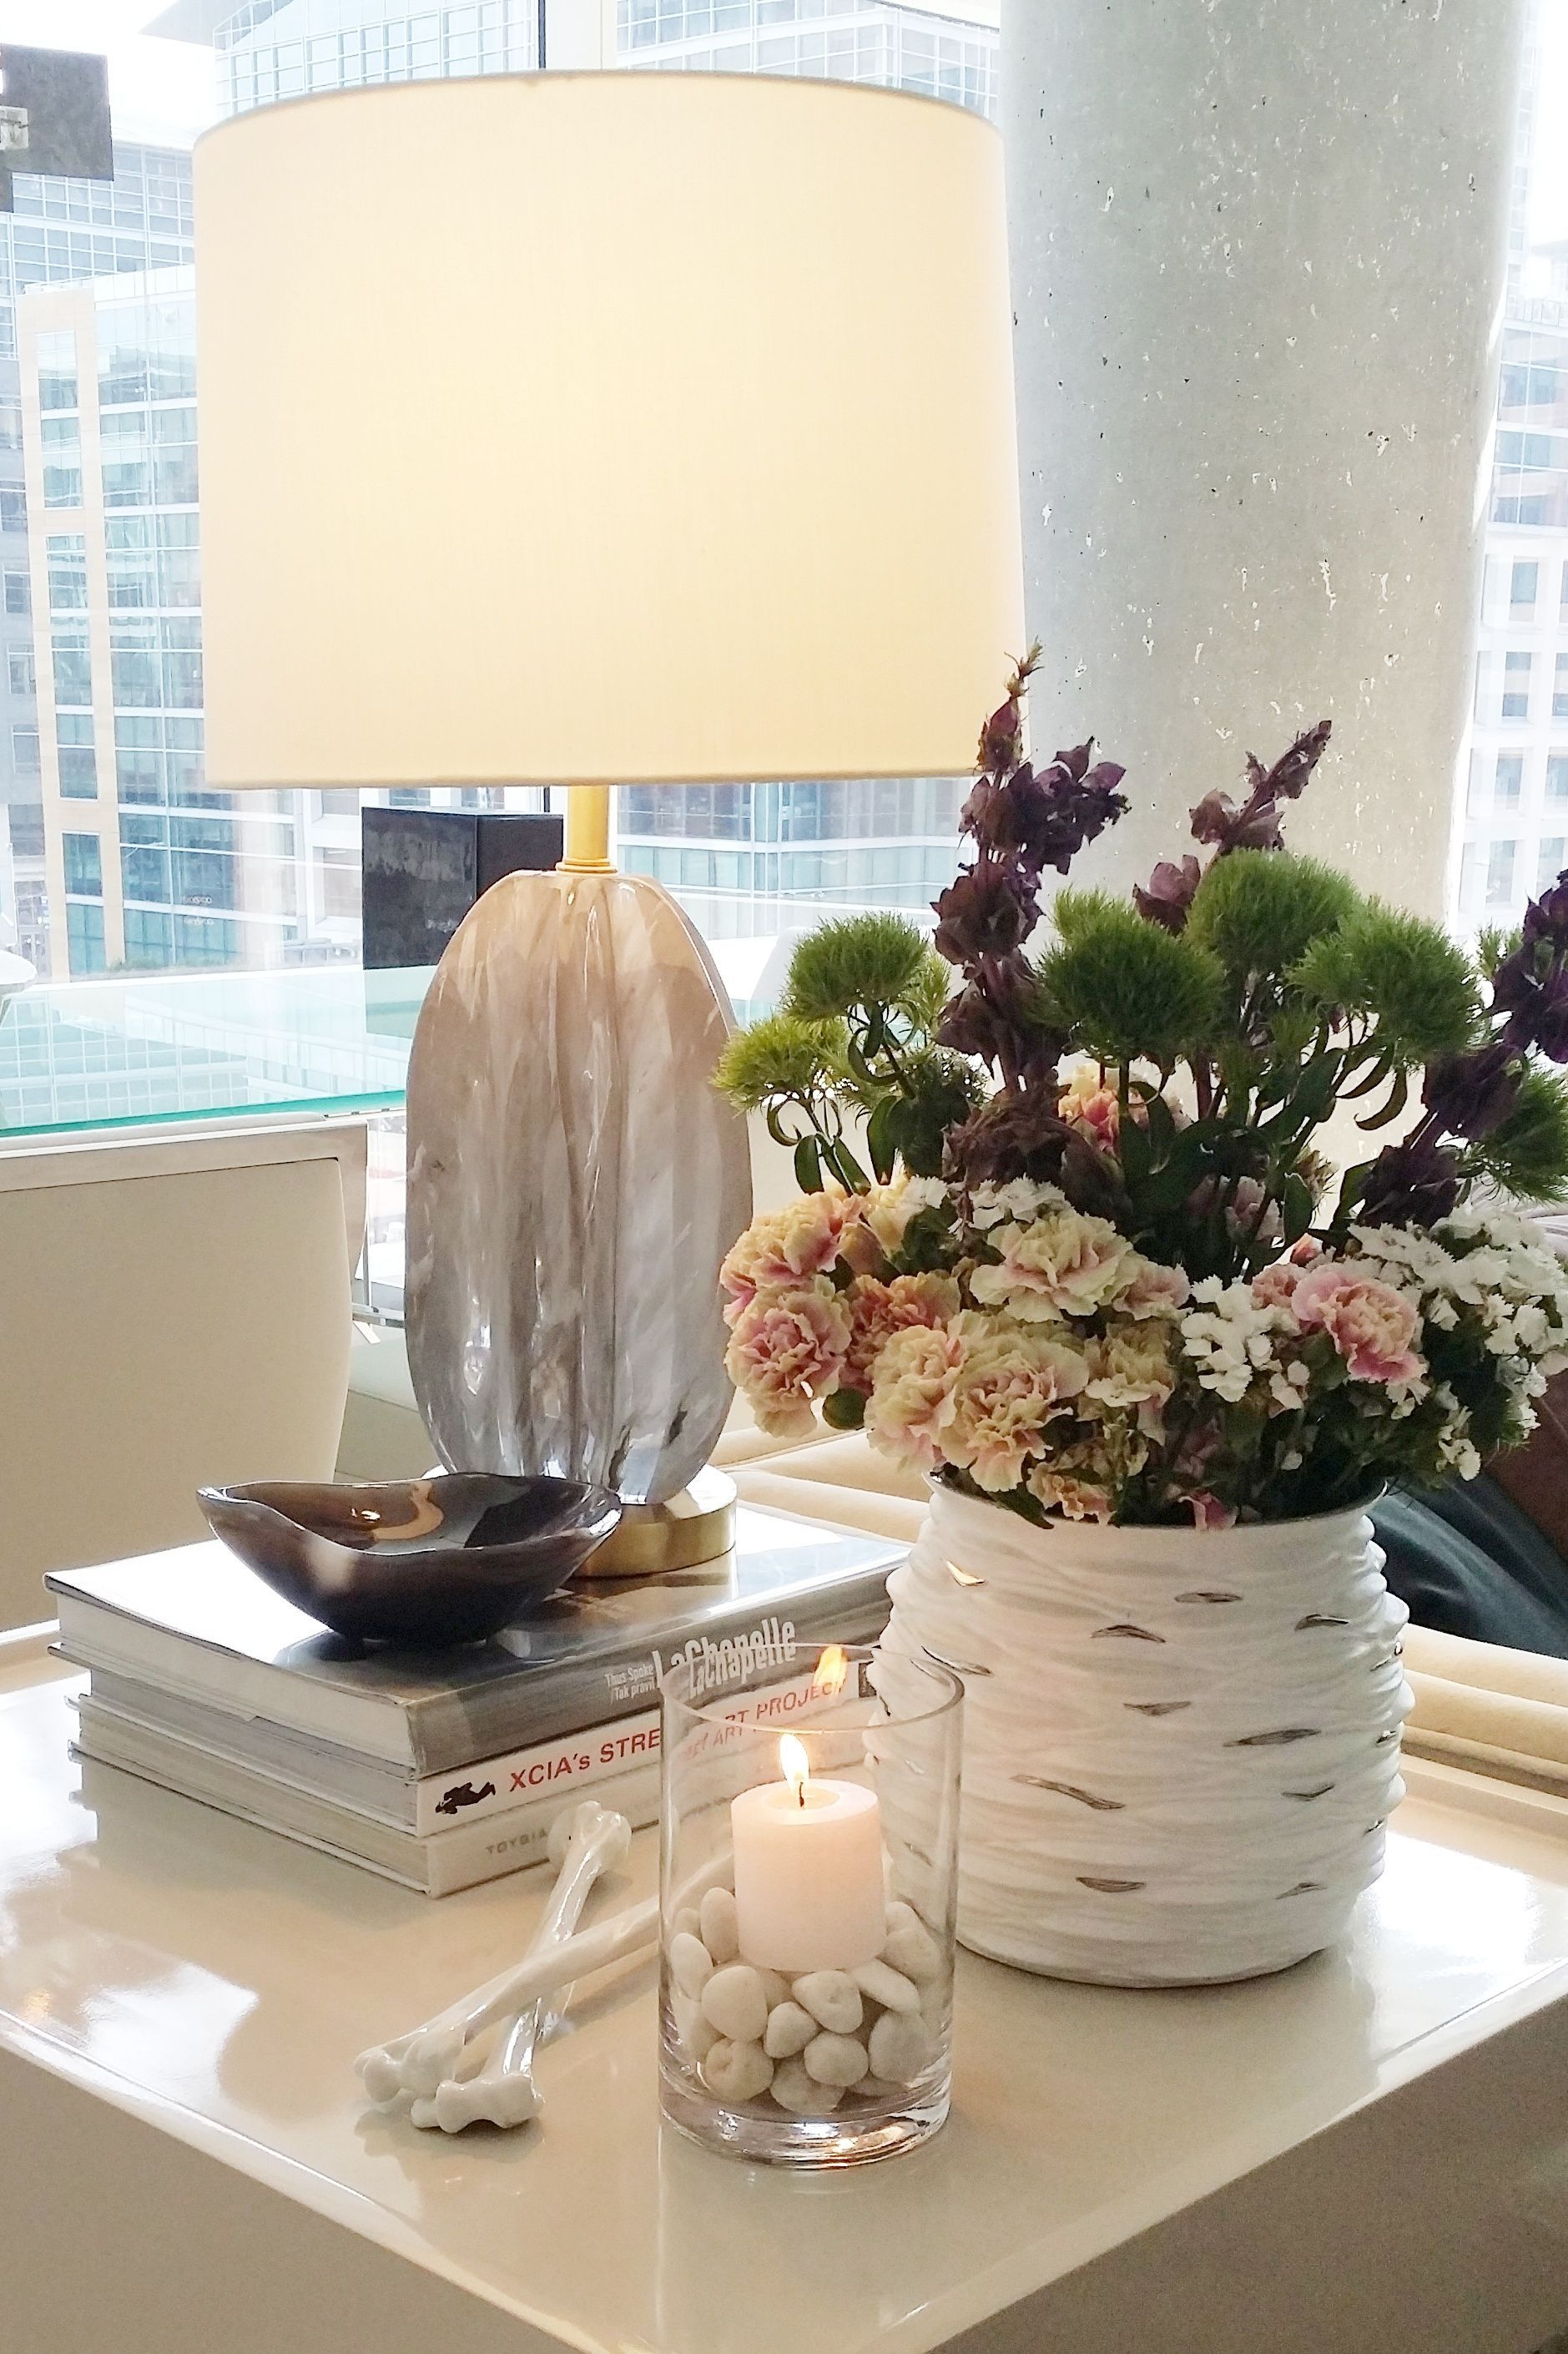 Crystal Table Lamp And Details In Luxury Living Room With Porcelain Vase And Fresh Flowers In San Francisco Luxury Living Room Decor Living Decor Crystal Lamp